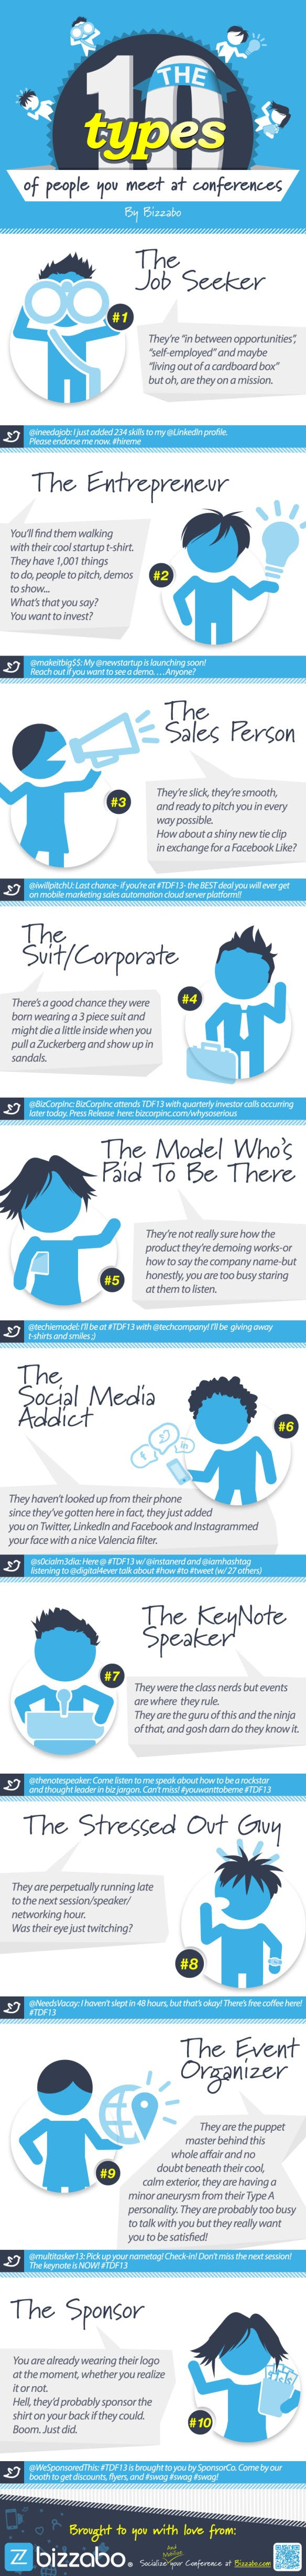 eventgoers_infographic